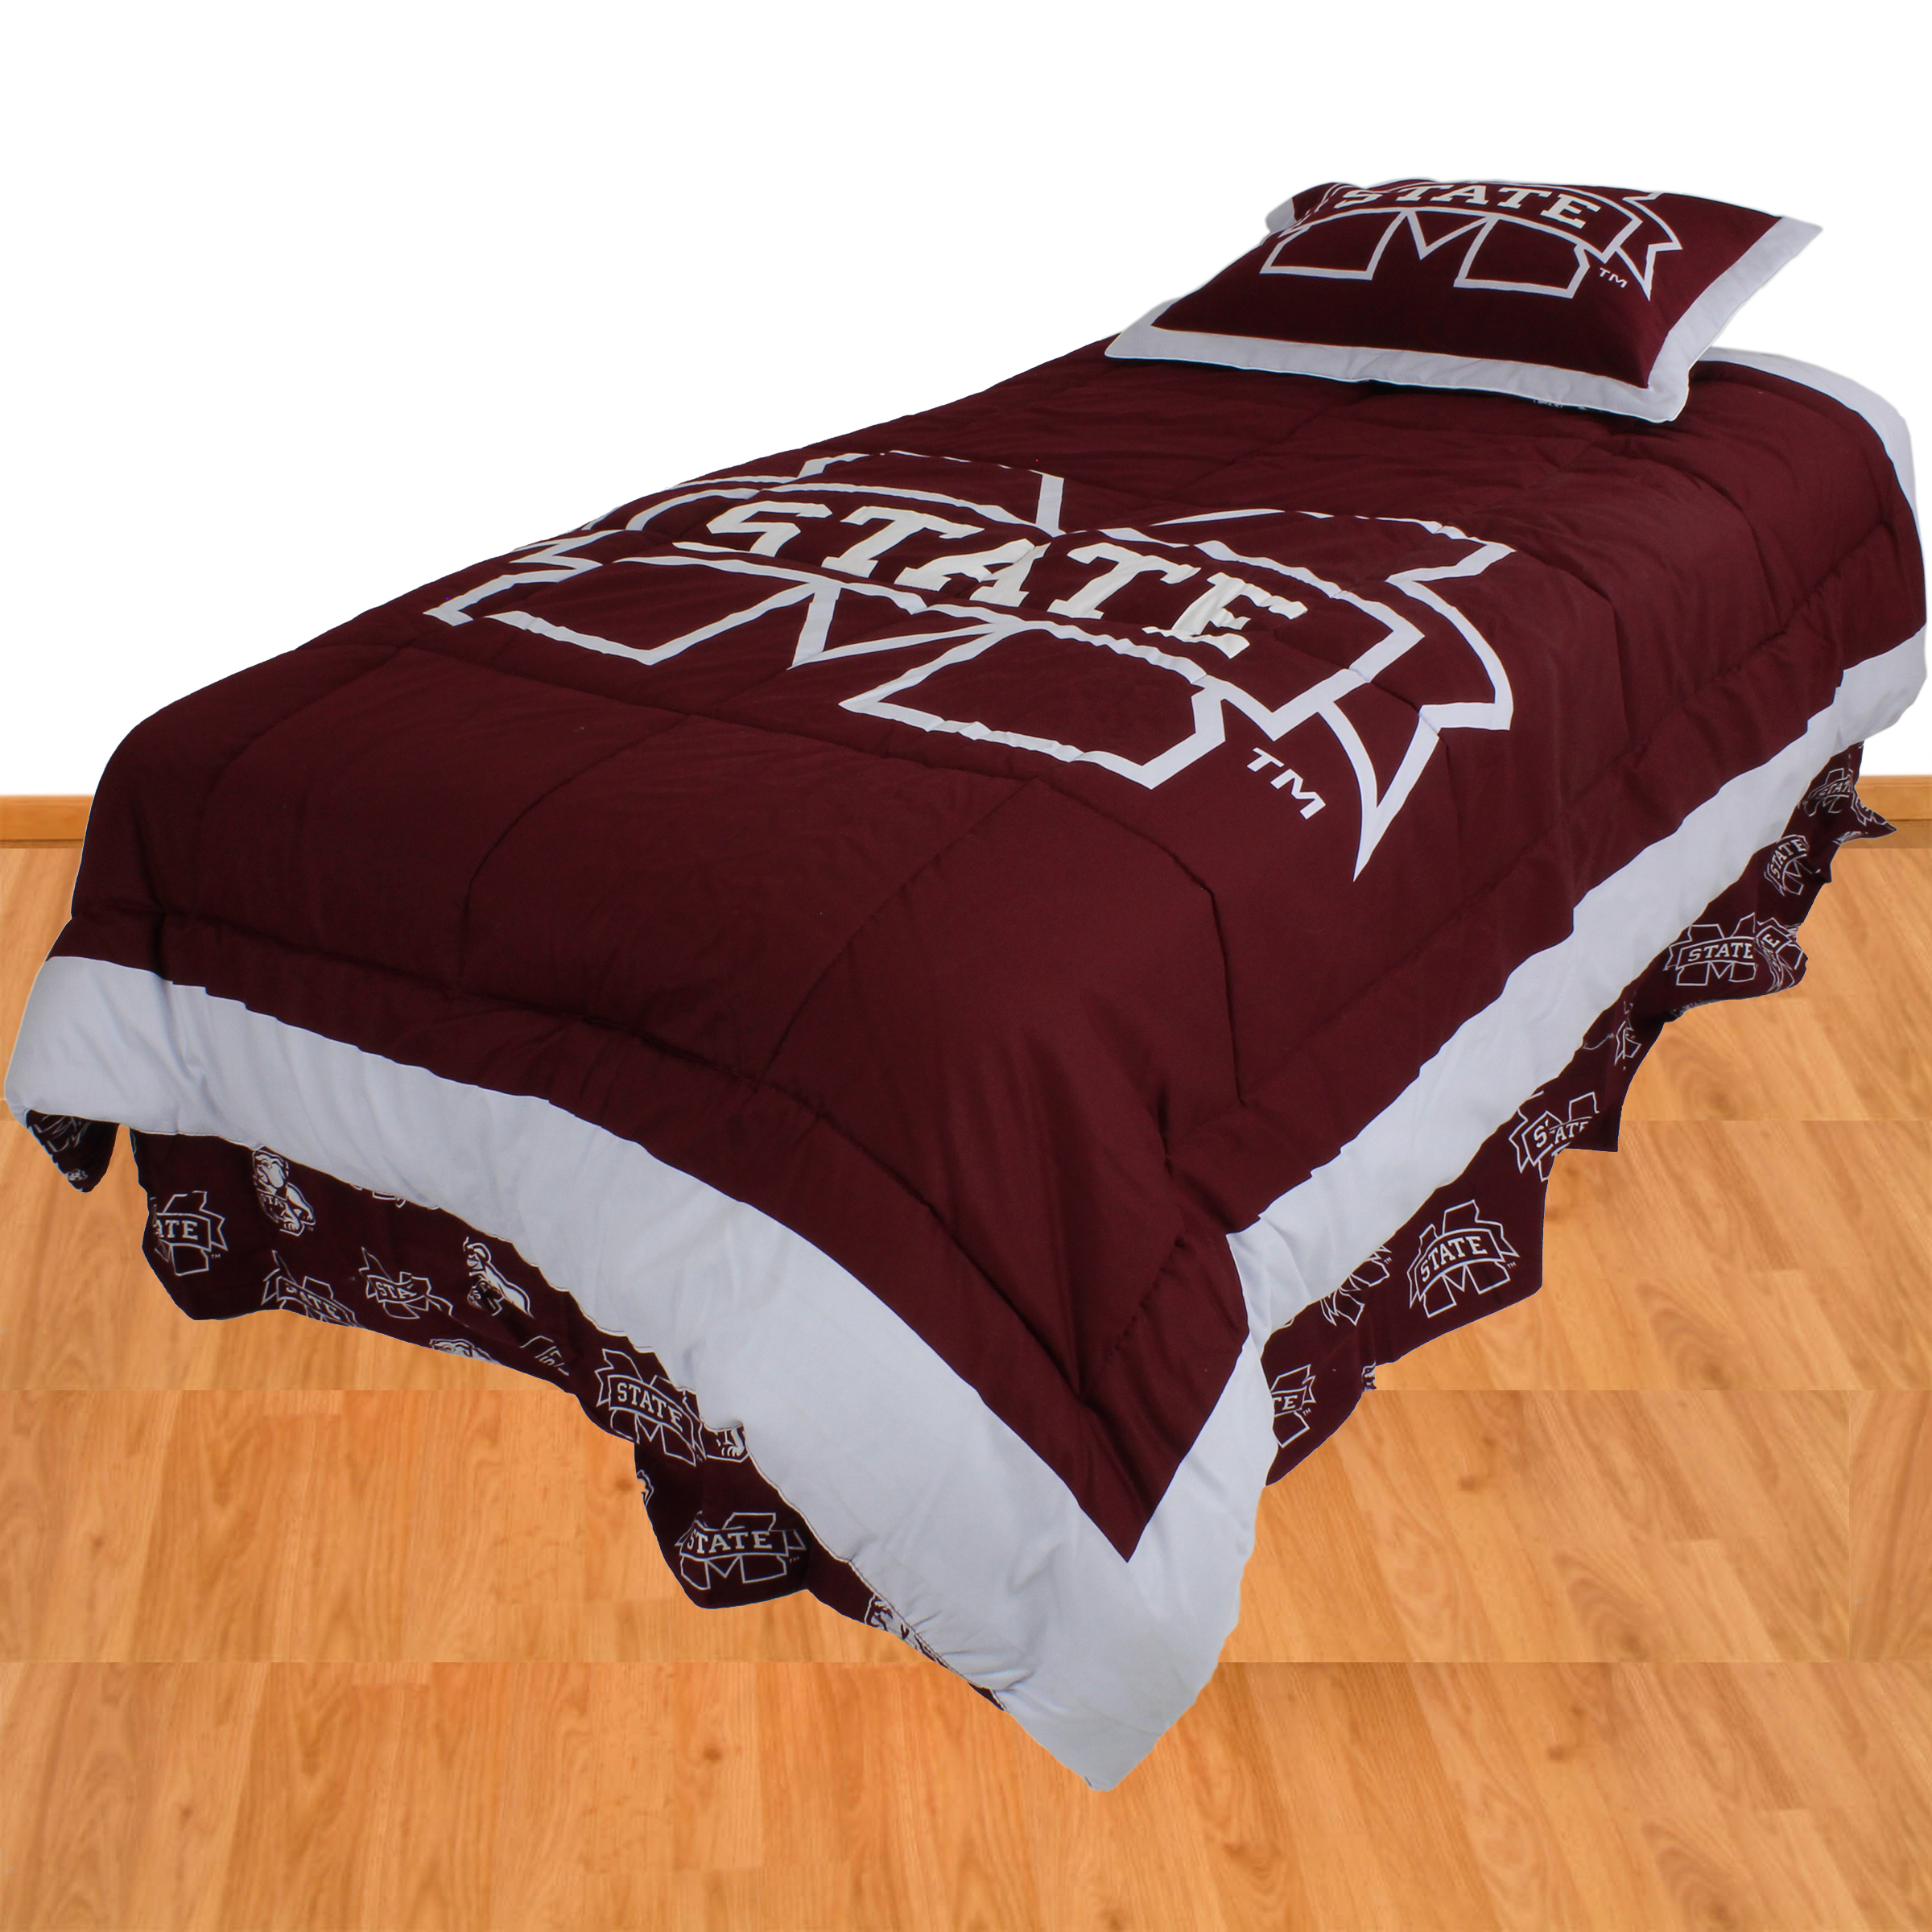 Mississippi State Bulldogs 2 Pc Comforter Set, 1 Comforter, 1 Sham, Twin